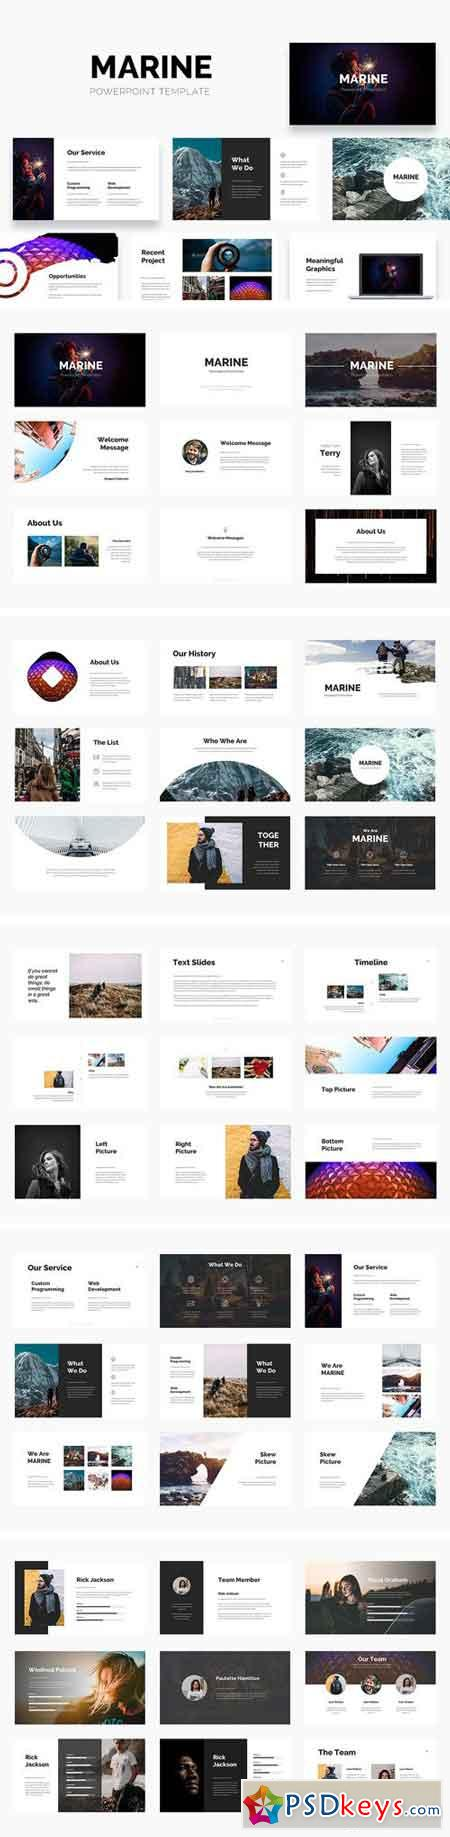 MARINE - Powerpoint Template 1741276